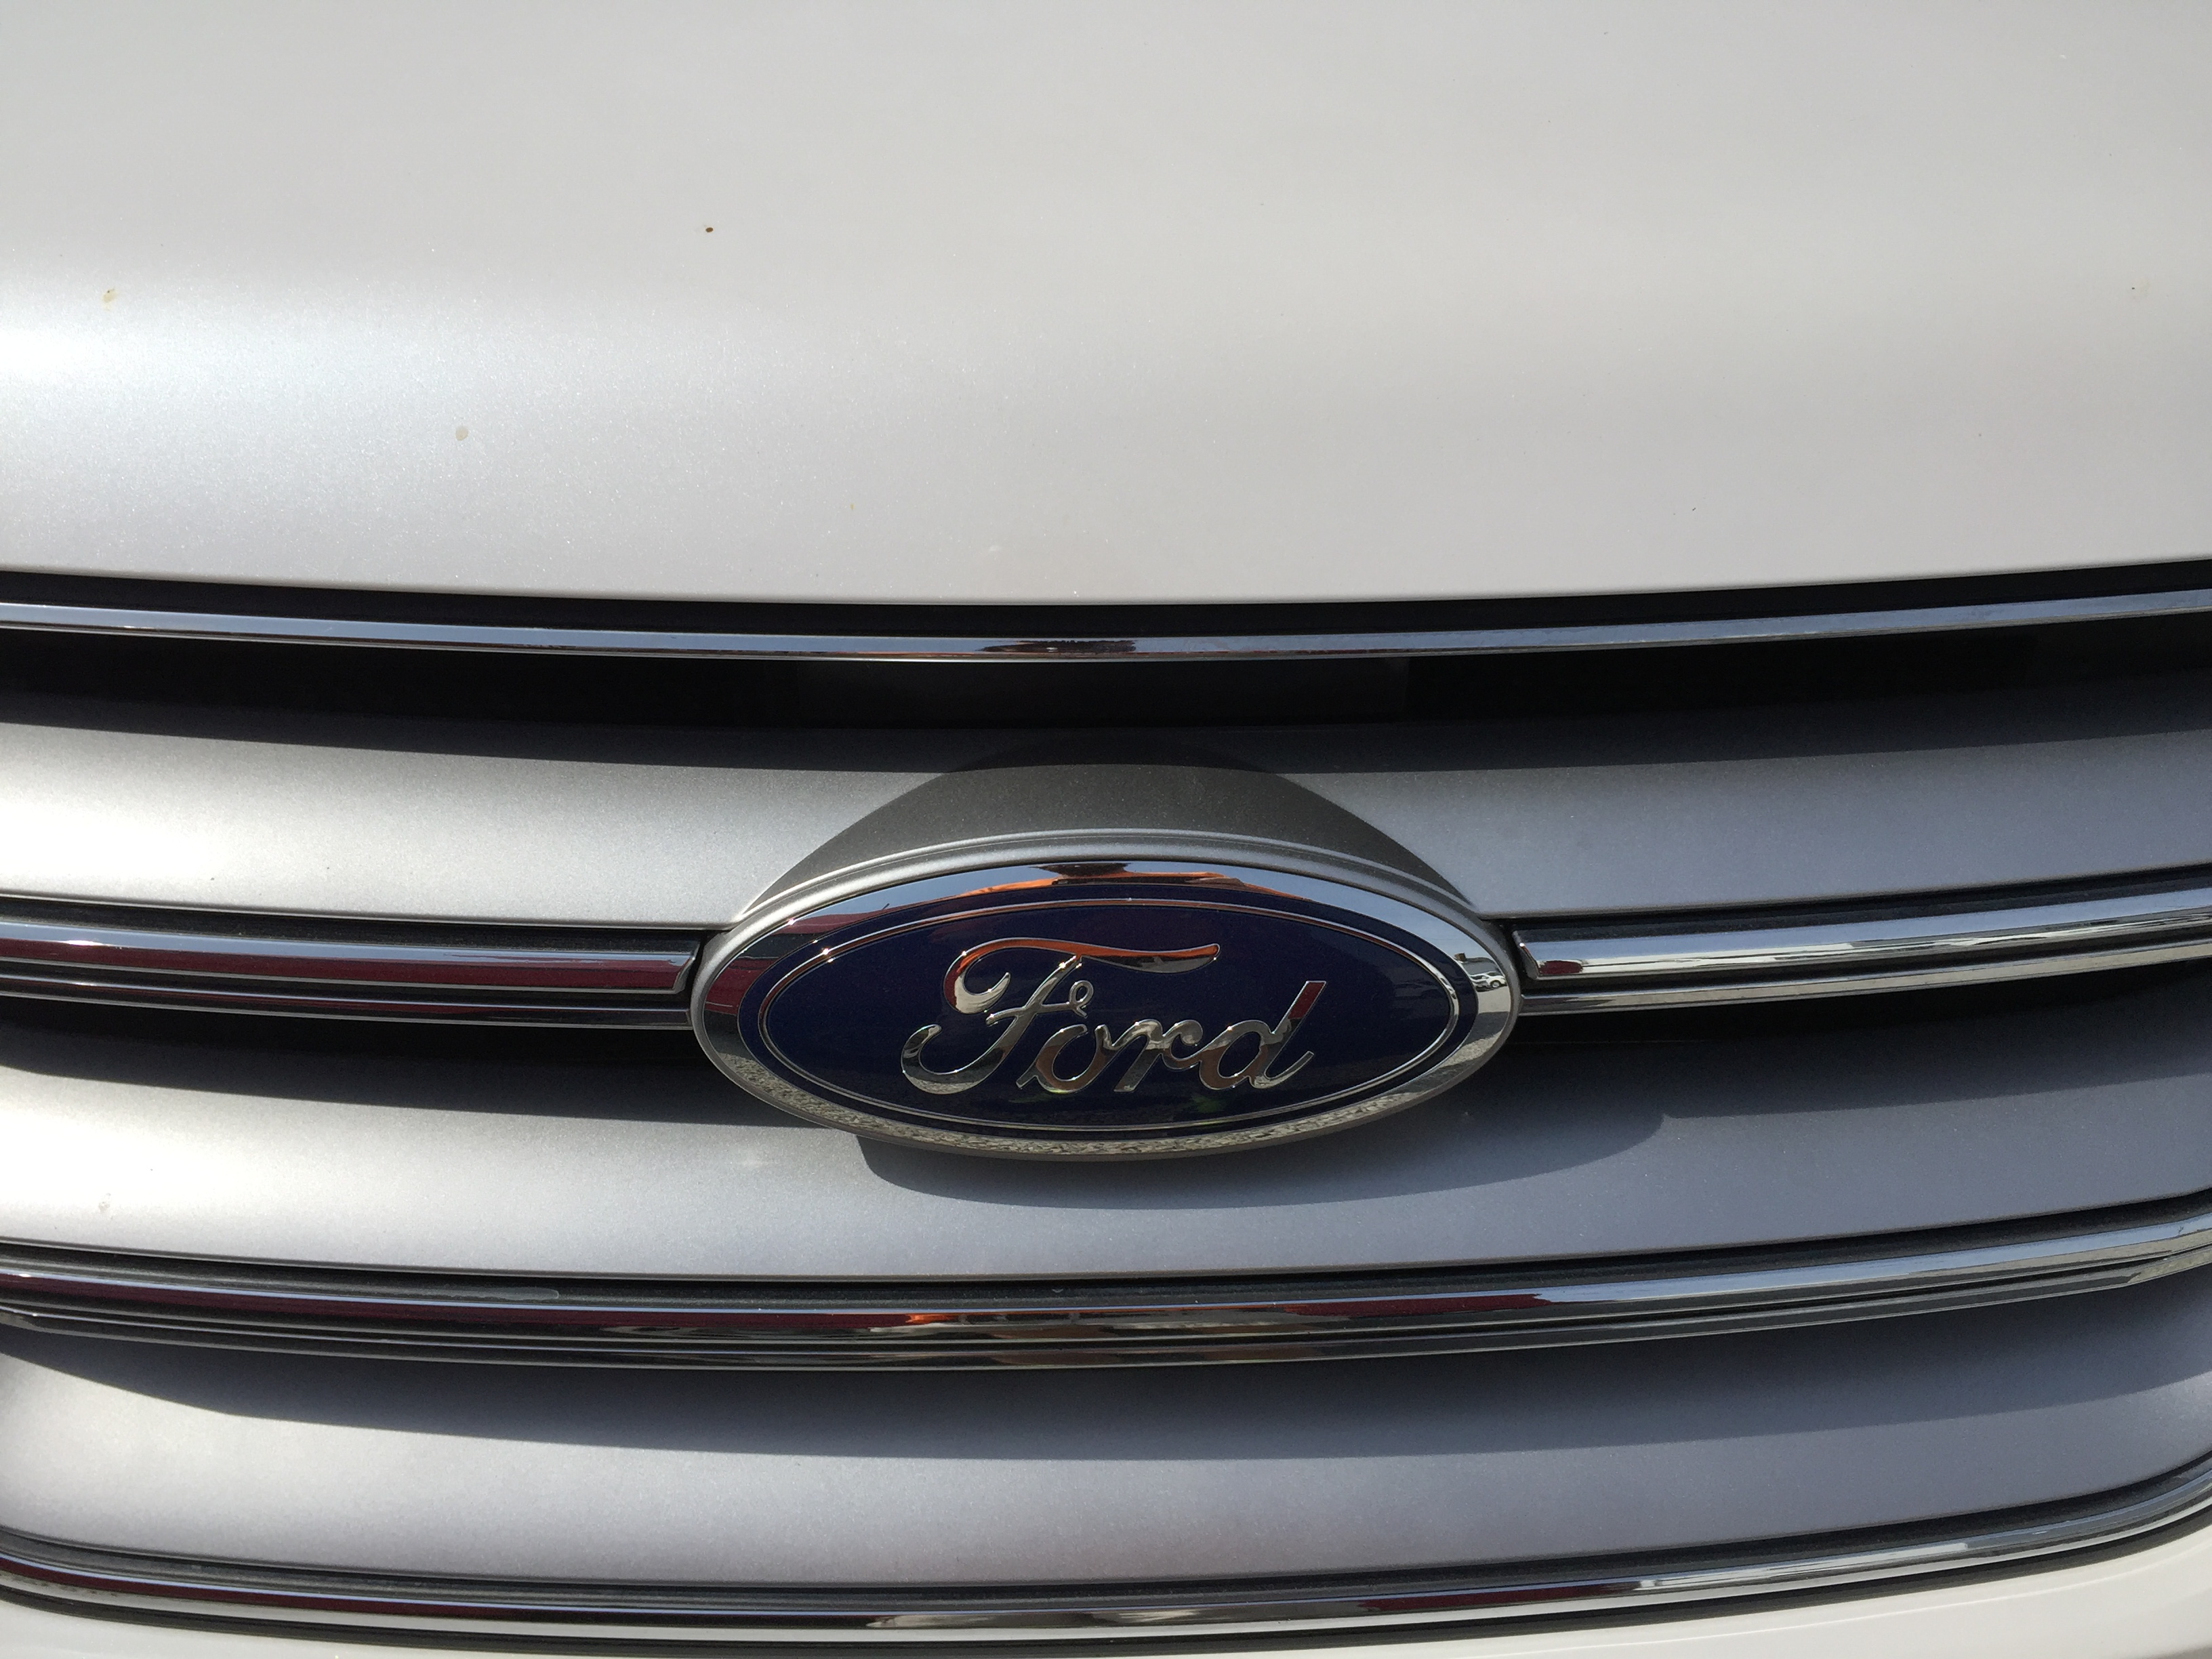 Springfield Dent Repair, Dent Removal, Hail Repair, 2015 Ford Edge Body Line Dent, Repair in Springfield IL, http://217dent.com